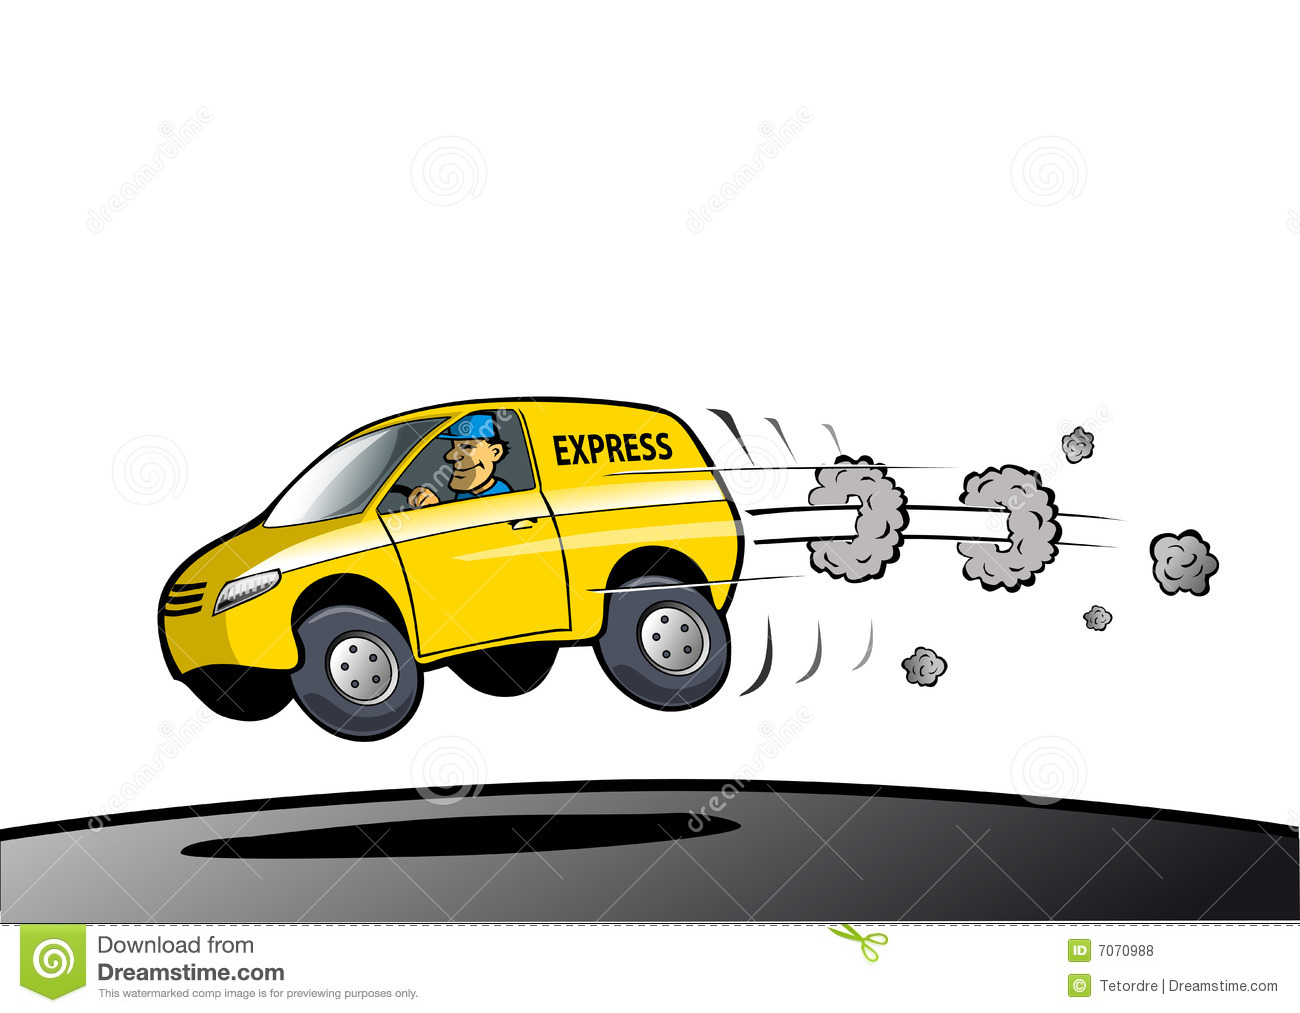 fast delivery service stock illustration. illustration of speed